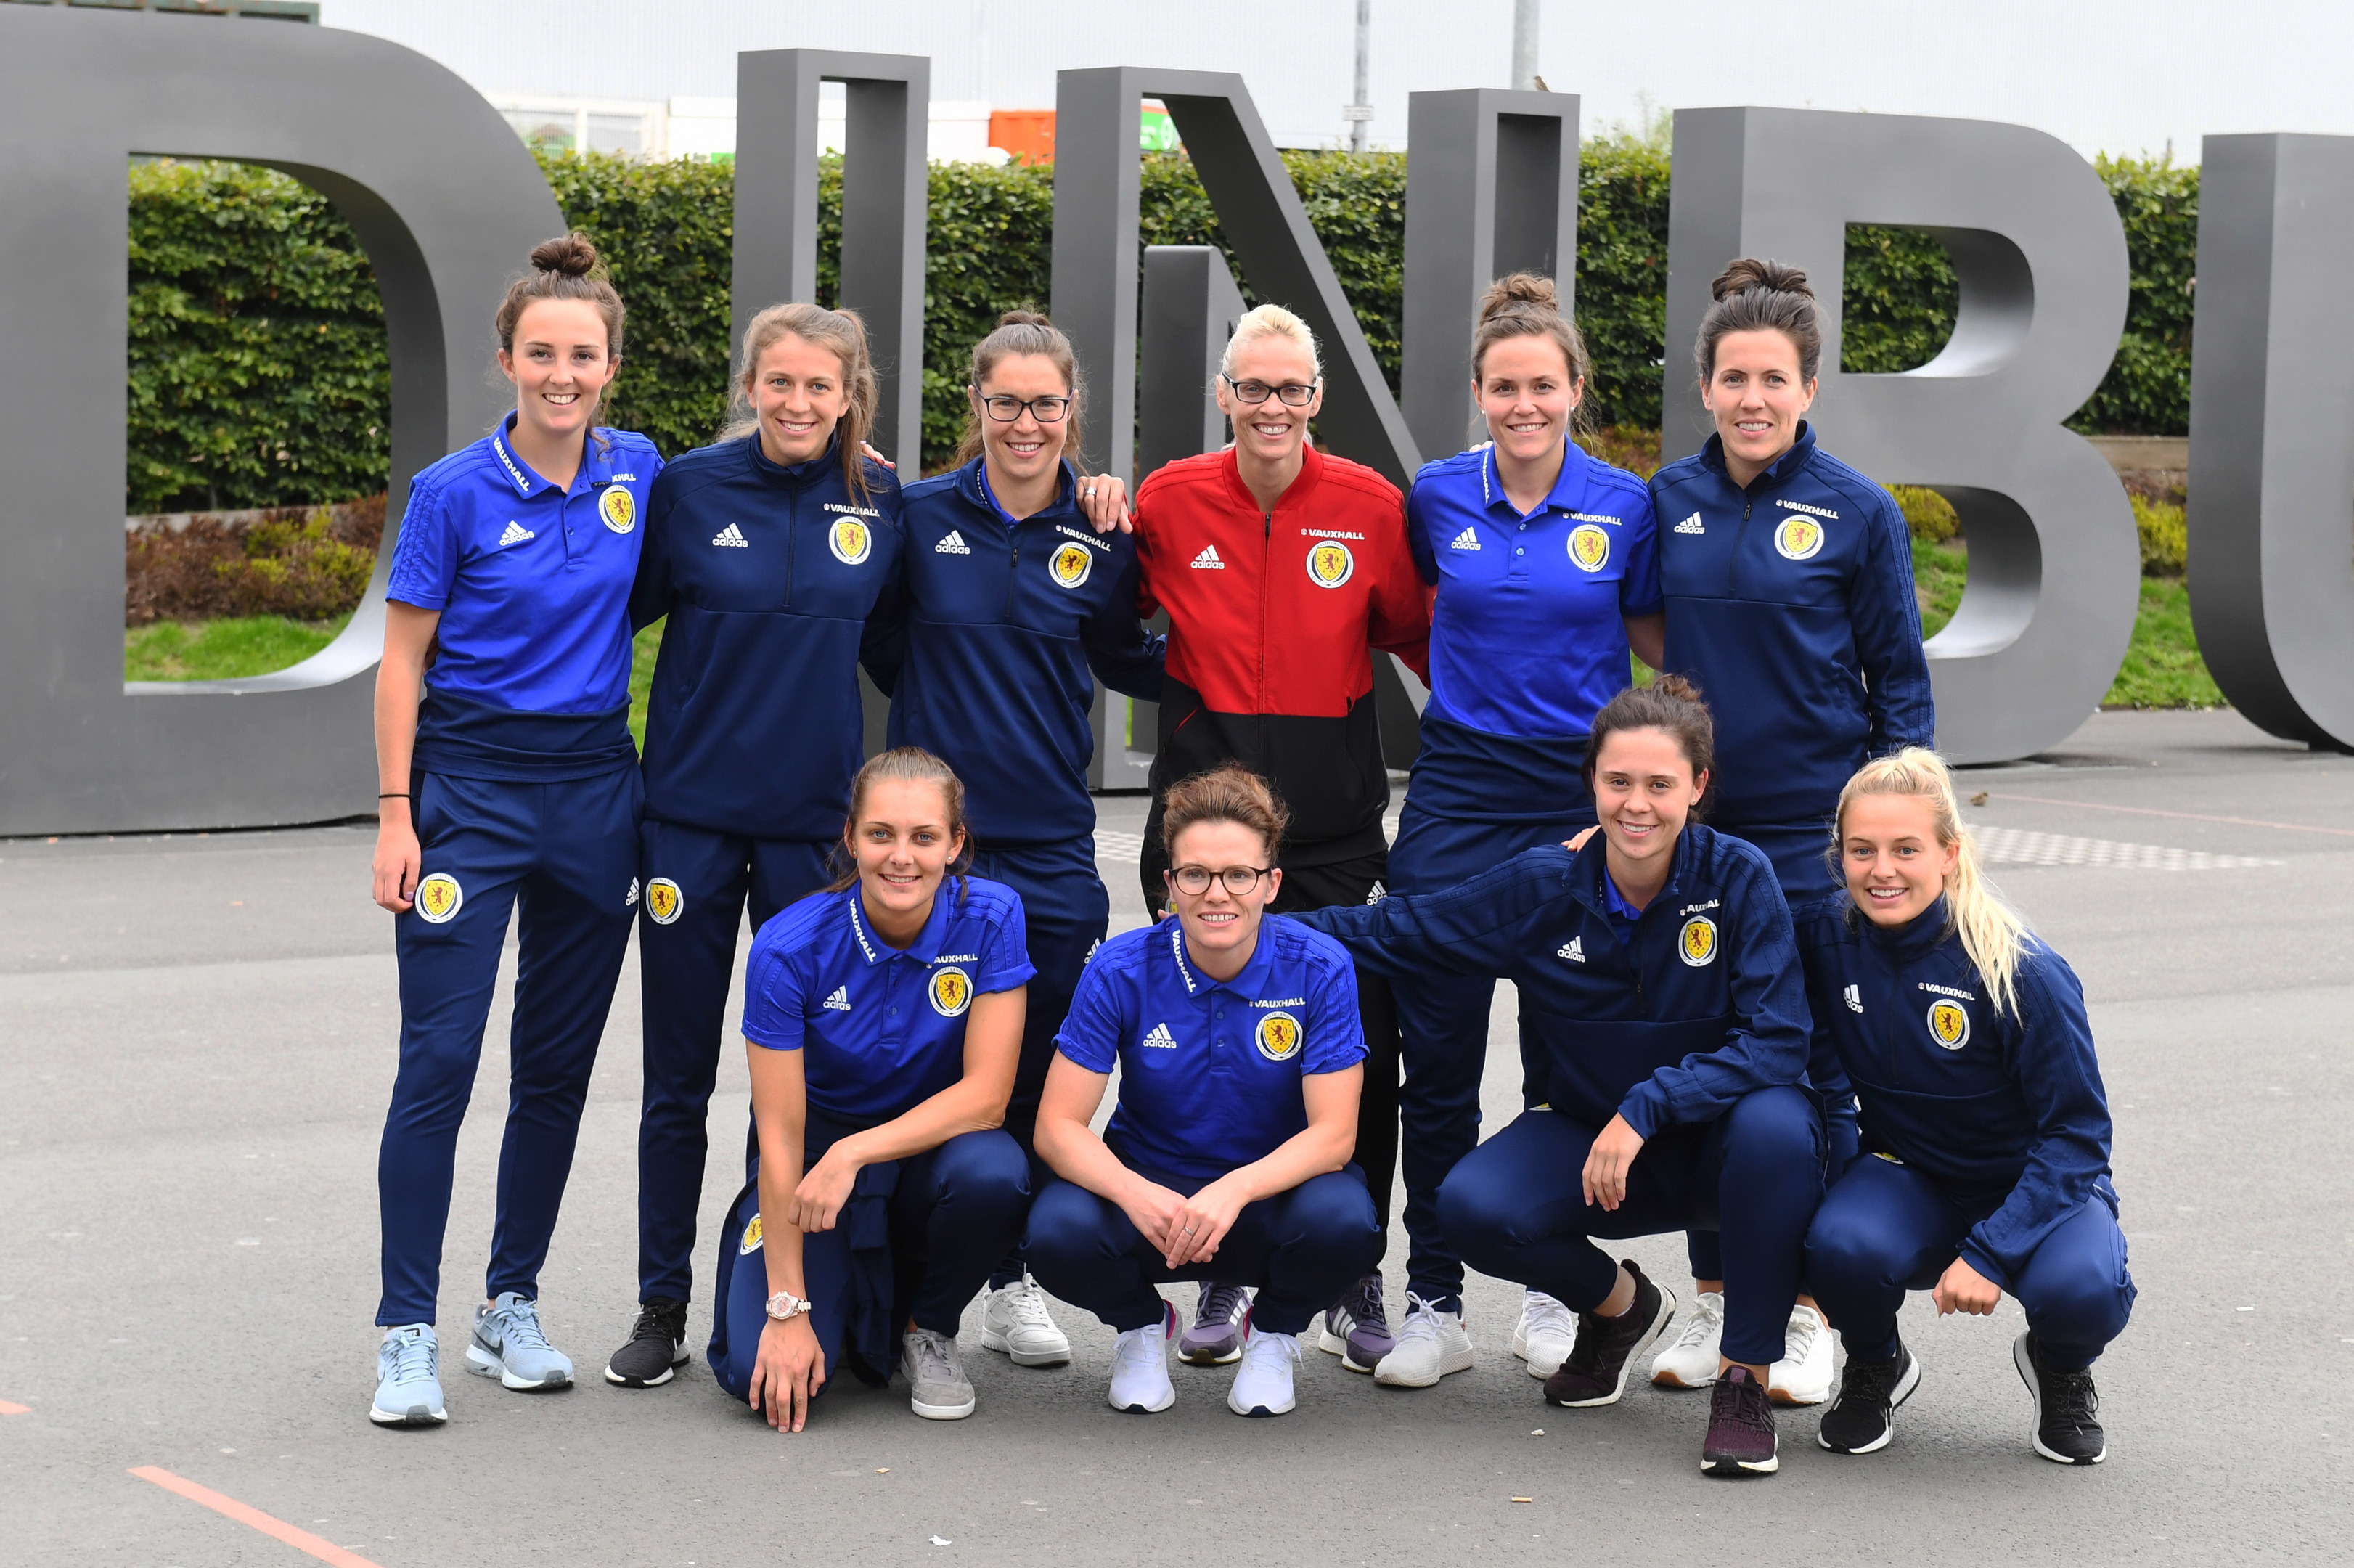 Some of Scotland's World Cup heroes.